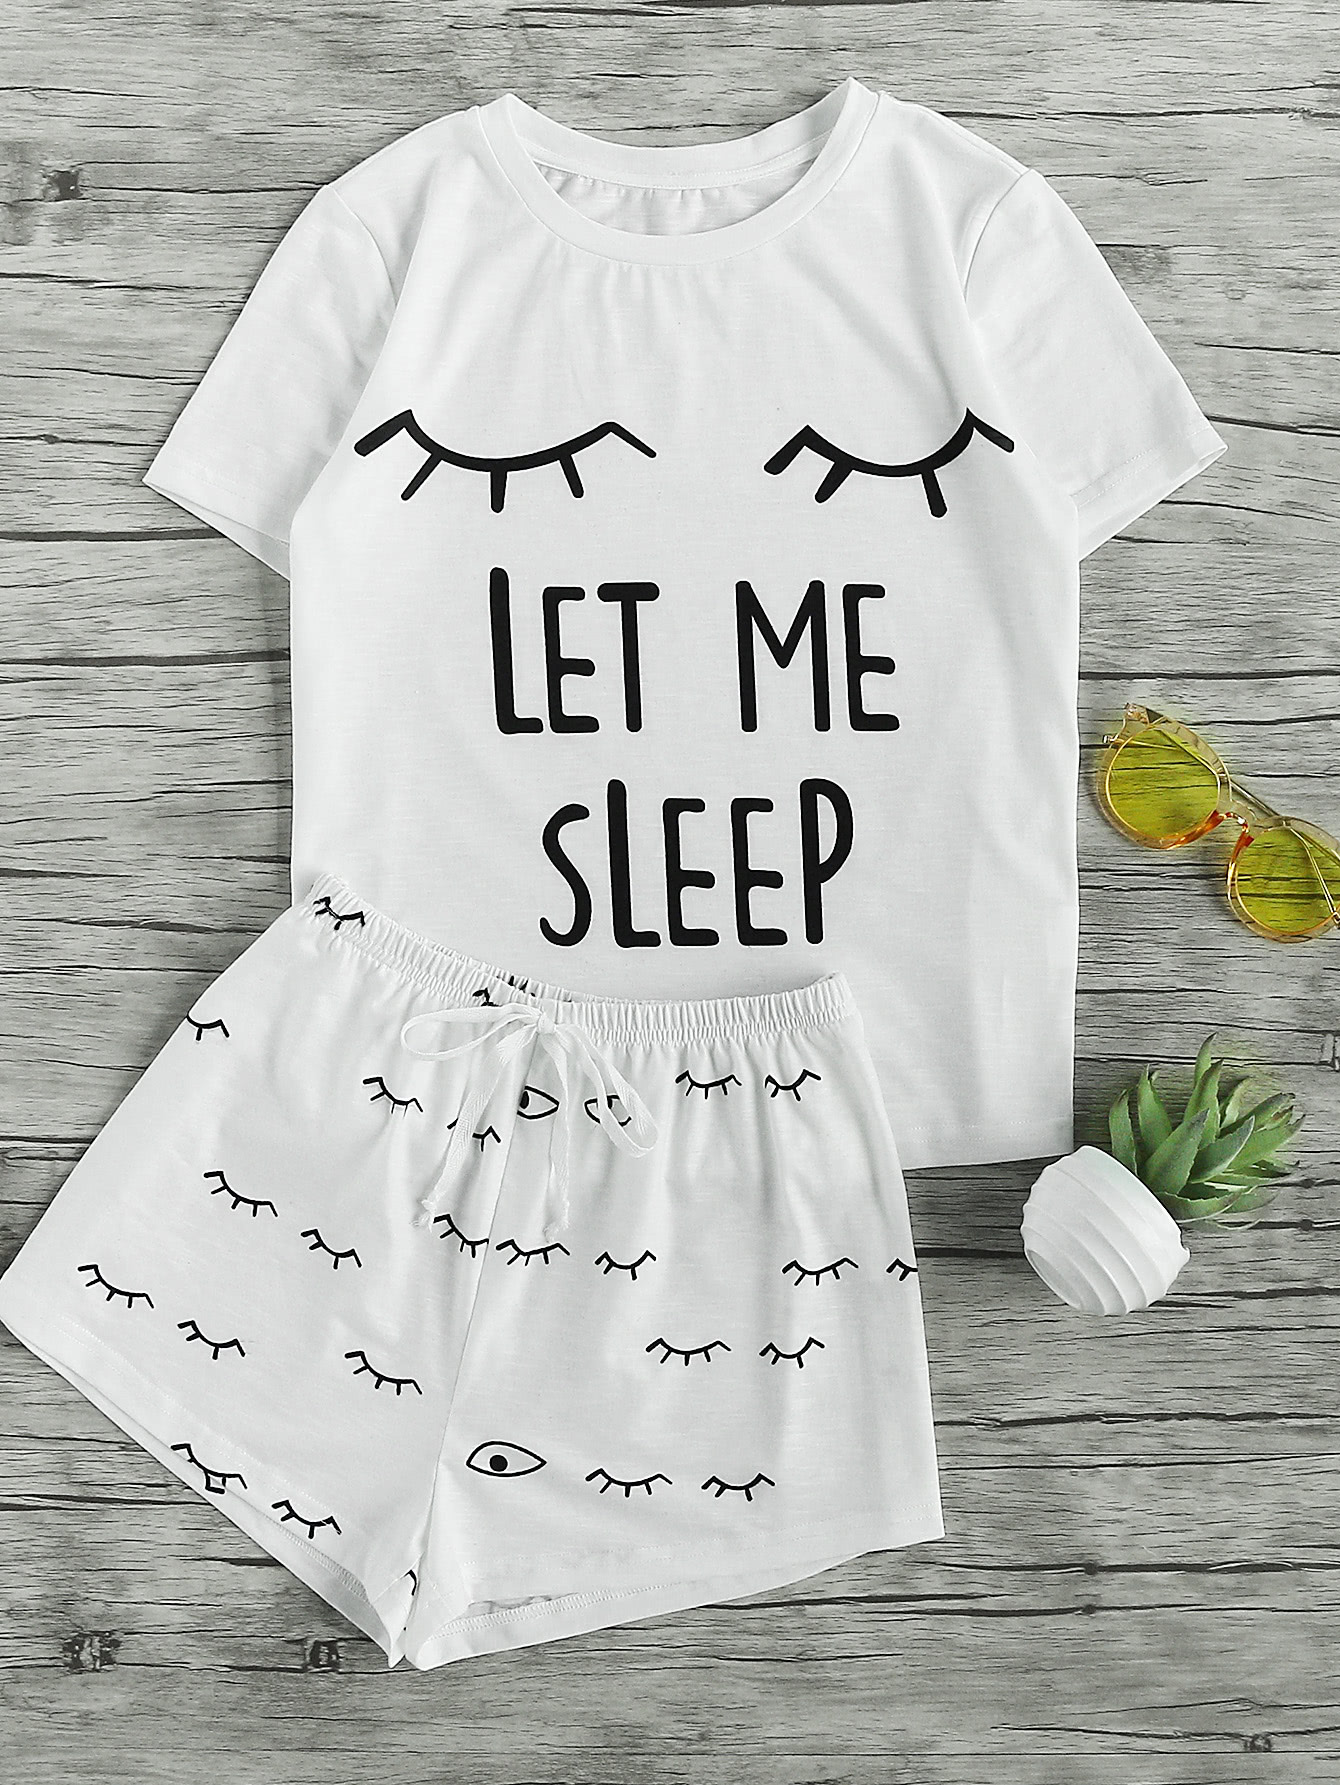 Closed Eyes Print Tee And Shorts Pajama Set heart print tee and striped shorts pajama set